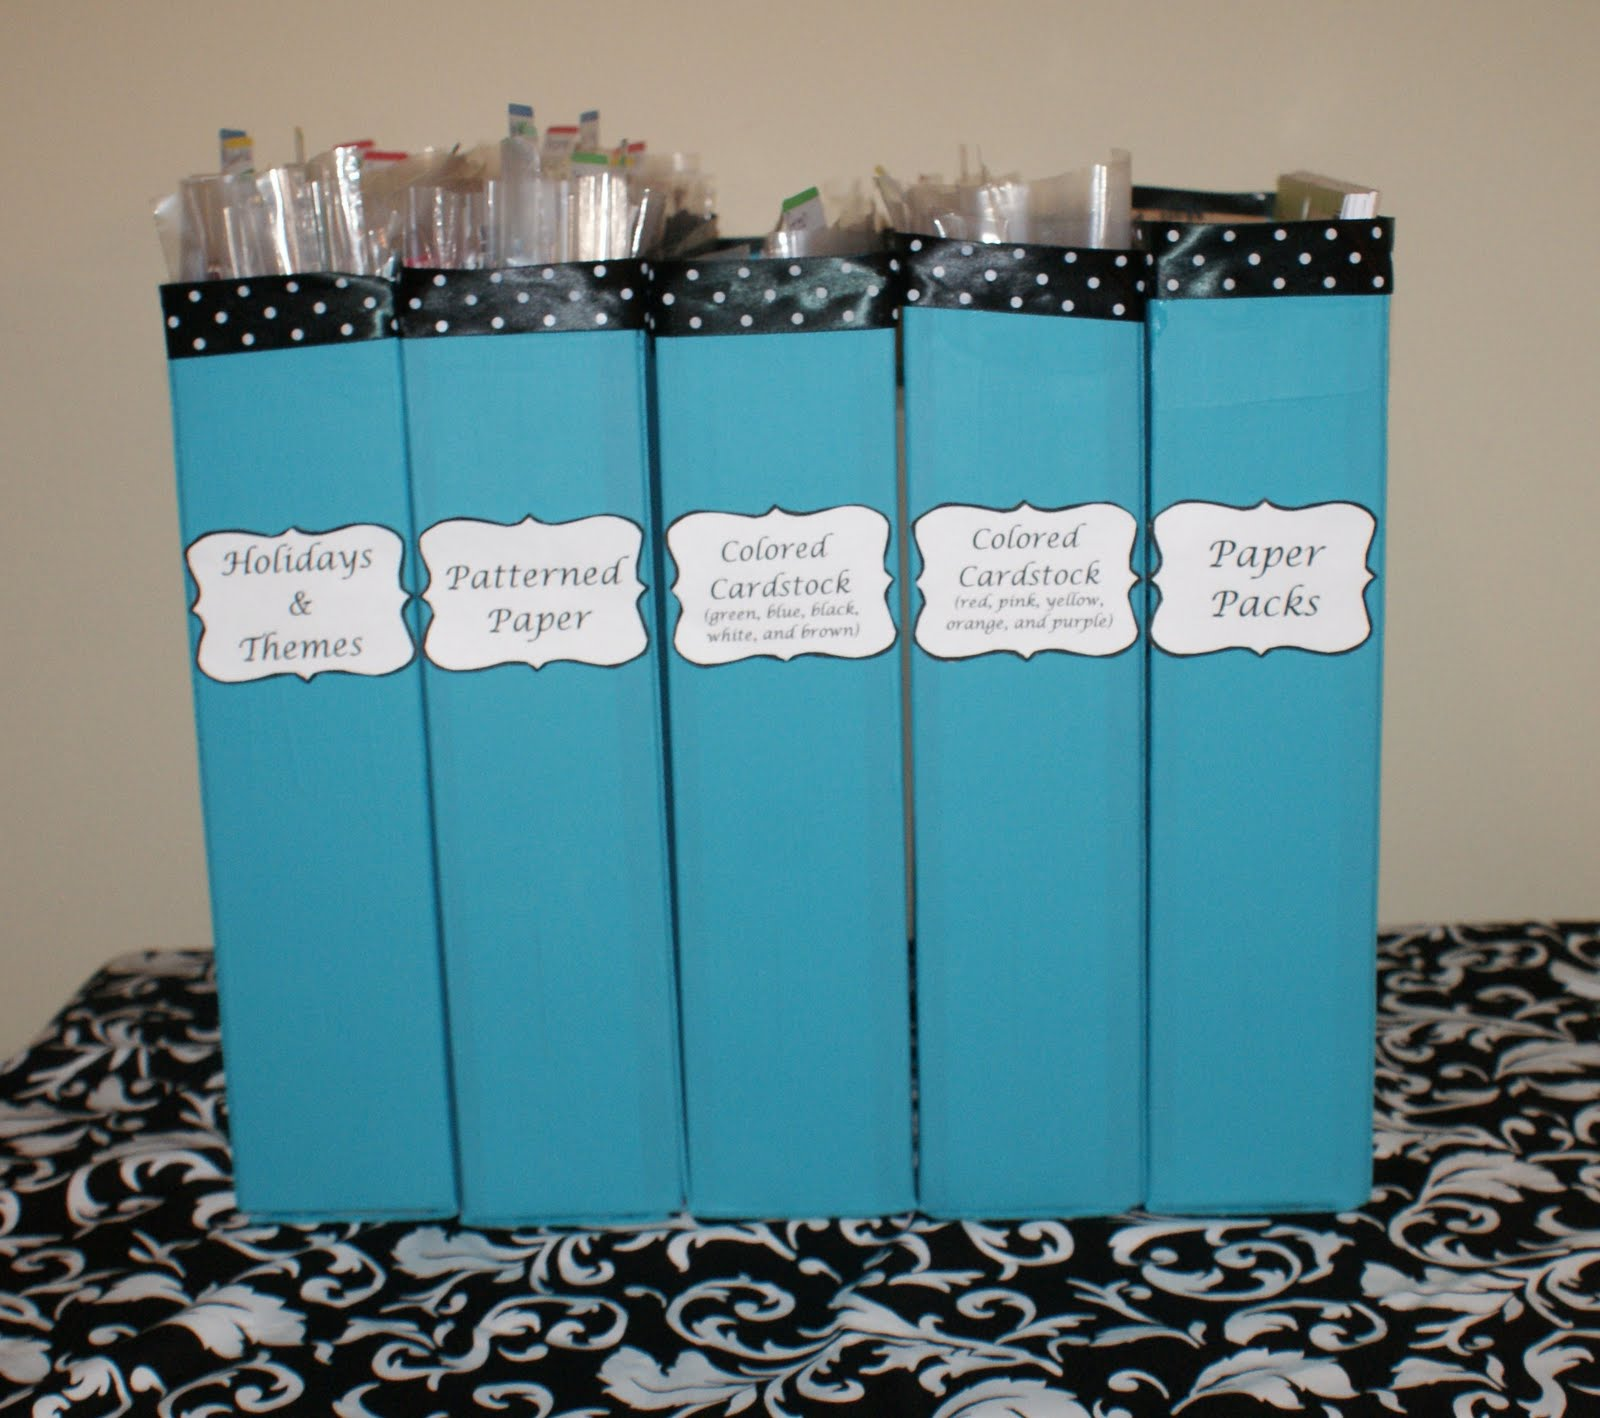 How to store scrapbook paper - This Storage System Was Under 10 Dollars To Create